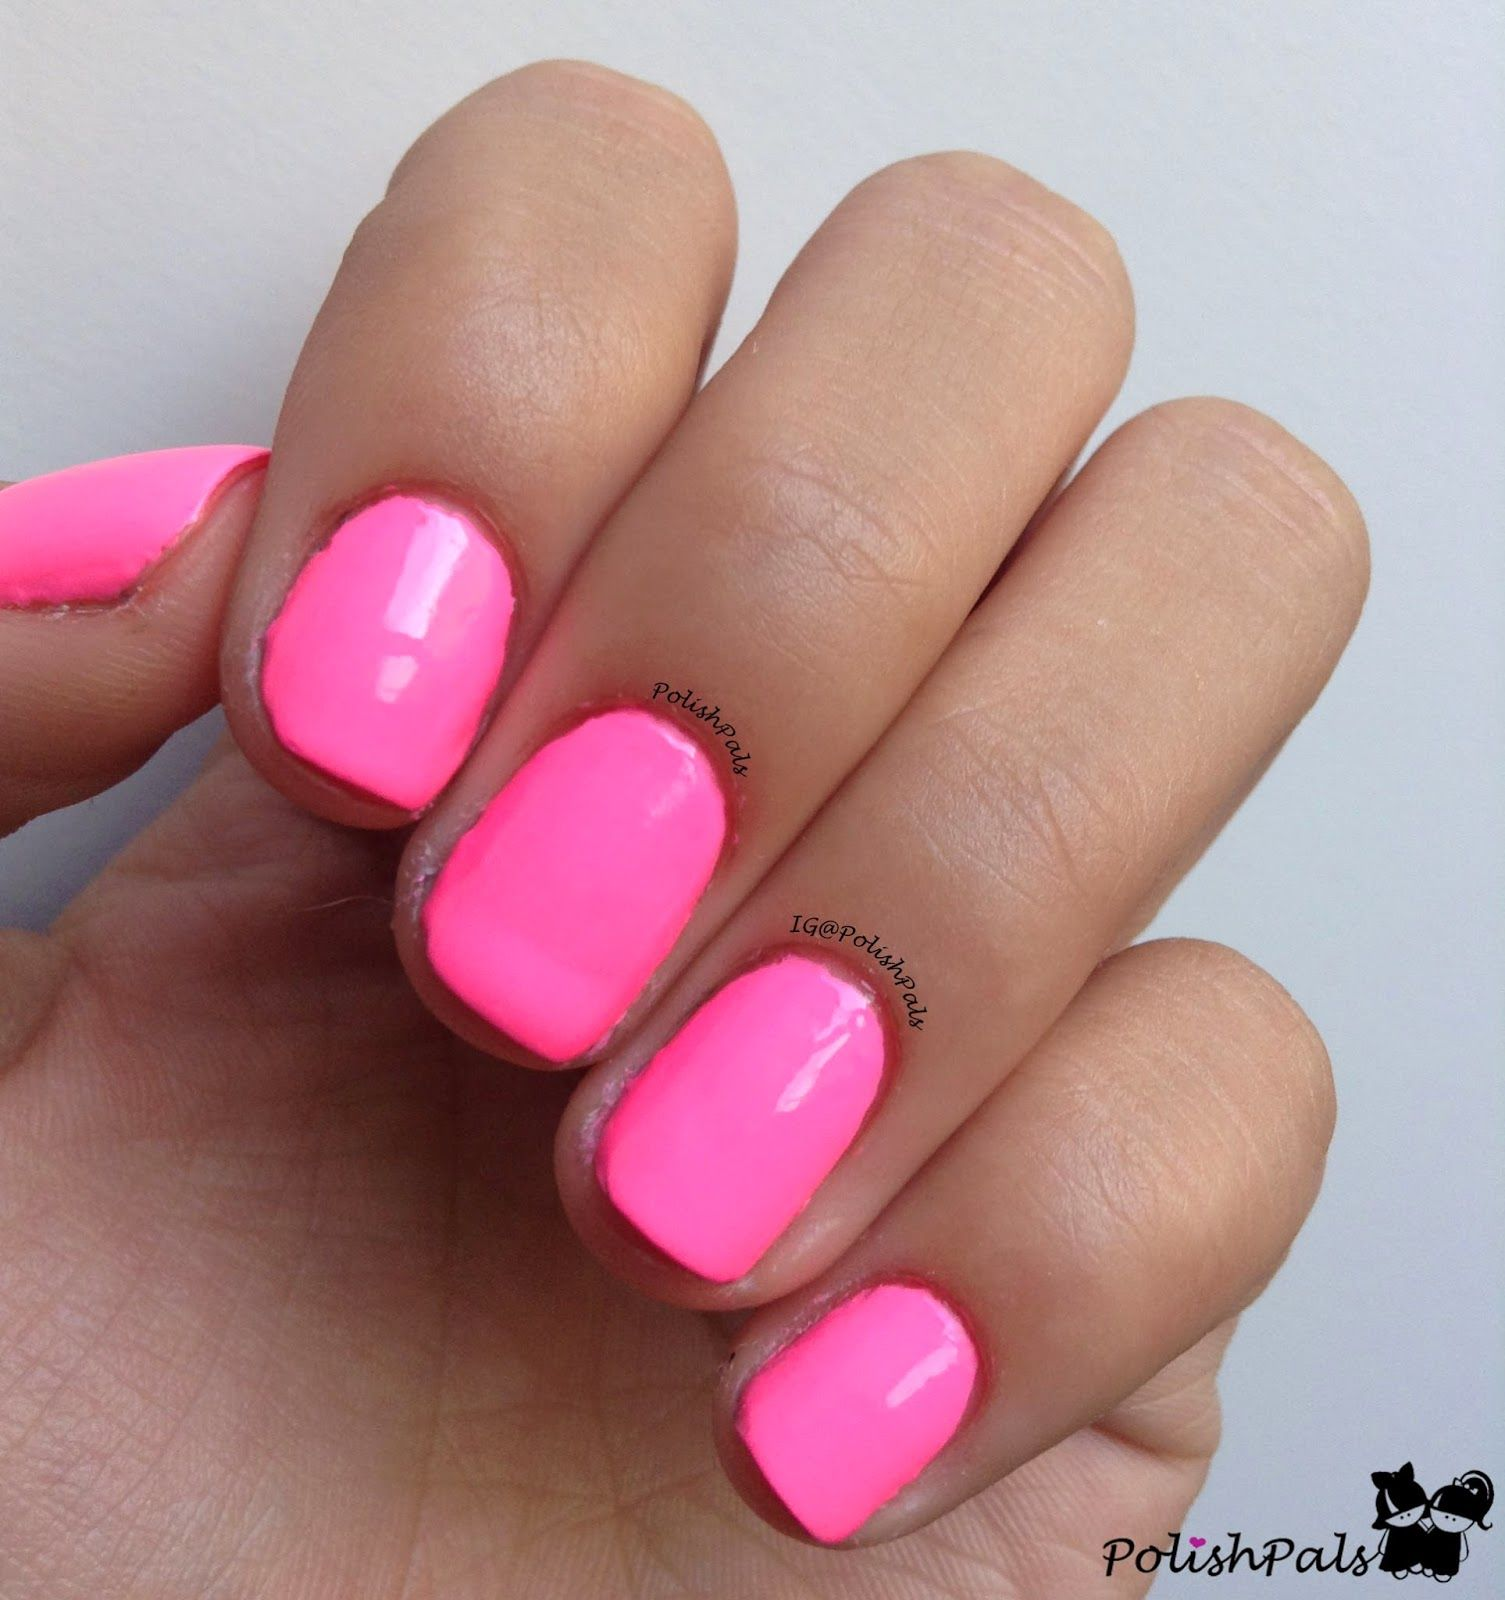 so i decided it was time to swatch my new hot pink nail polish